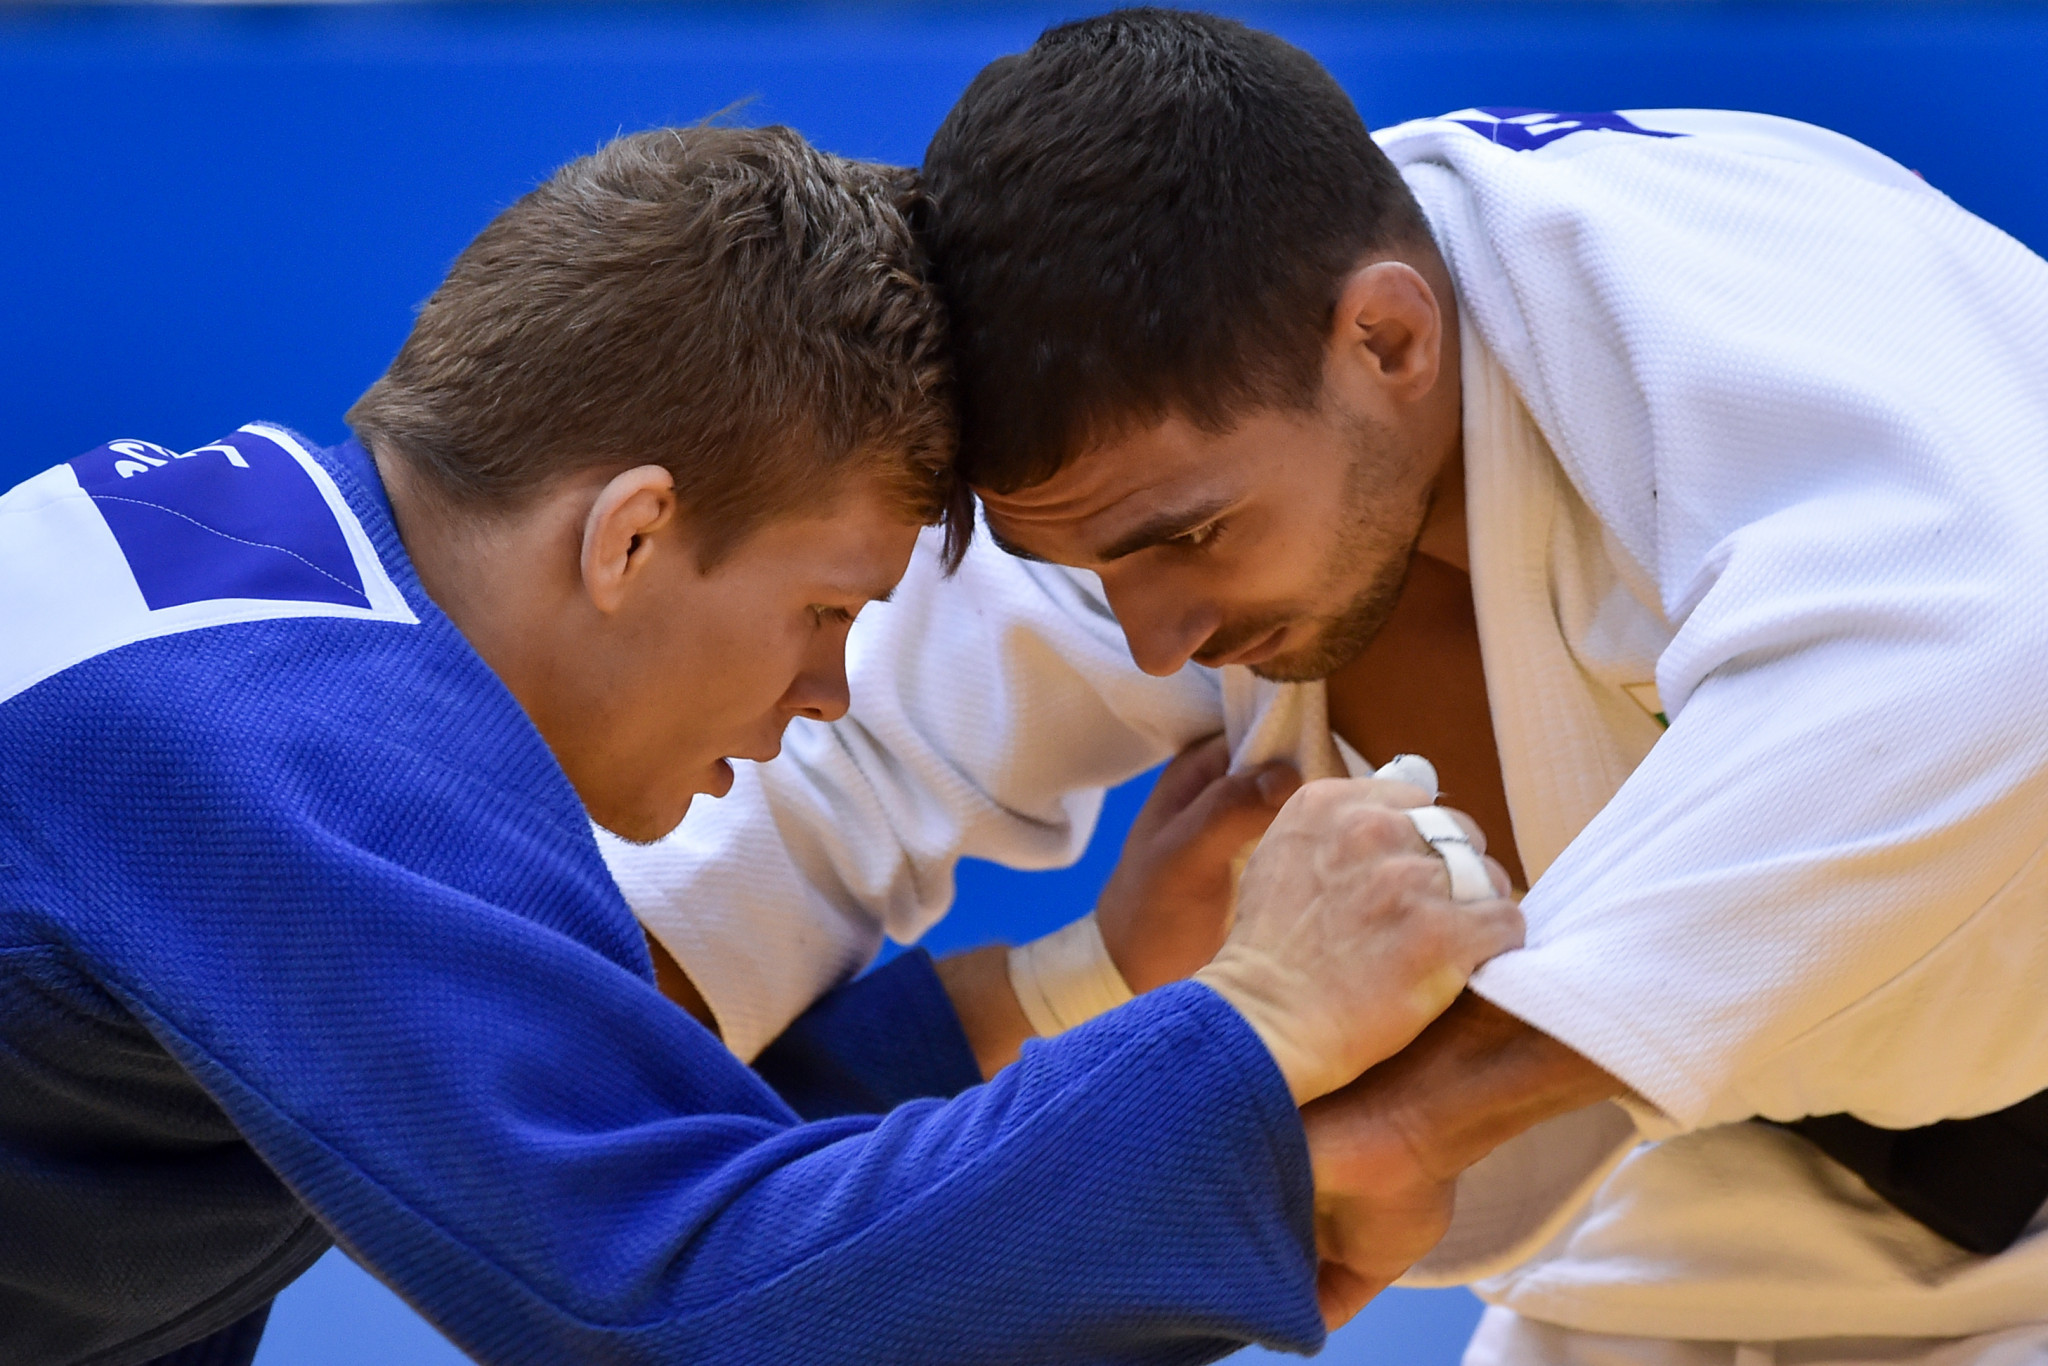 Belgium's Matthias Casse, in blue, claimed the gold medal in the under-81kg with victory over Bulgaria's Ivaylo Ivanov ©Getty Images